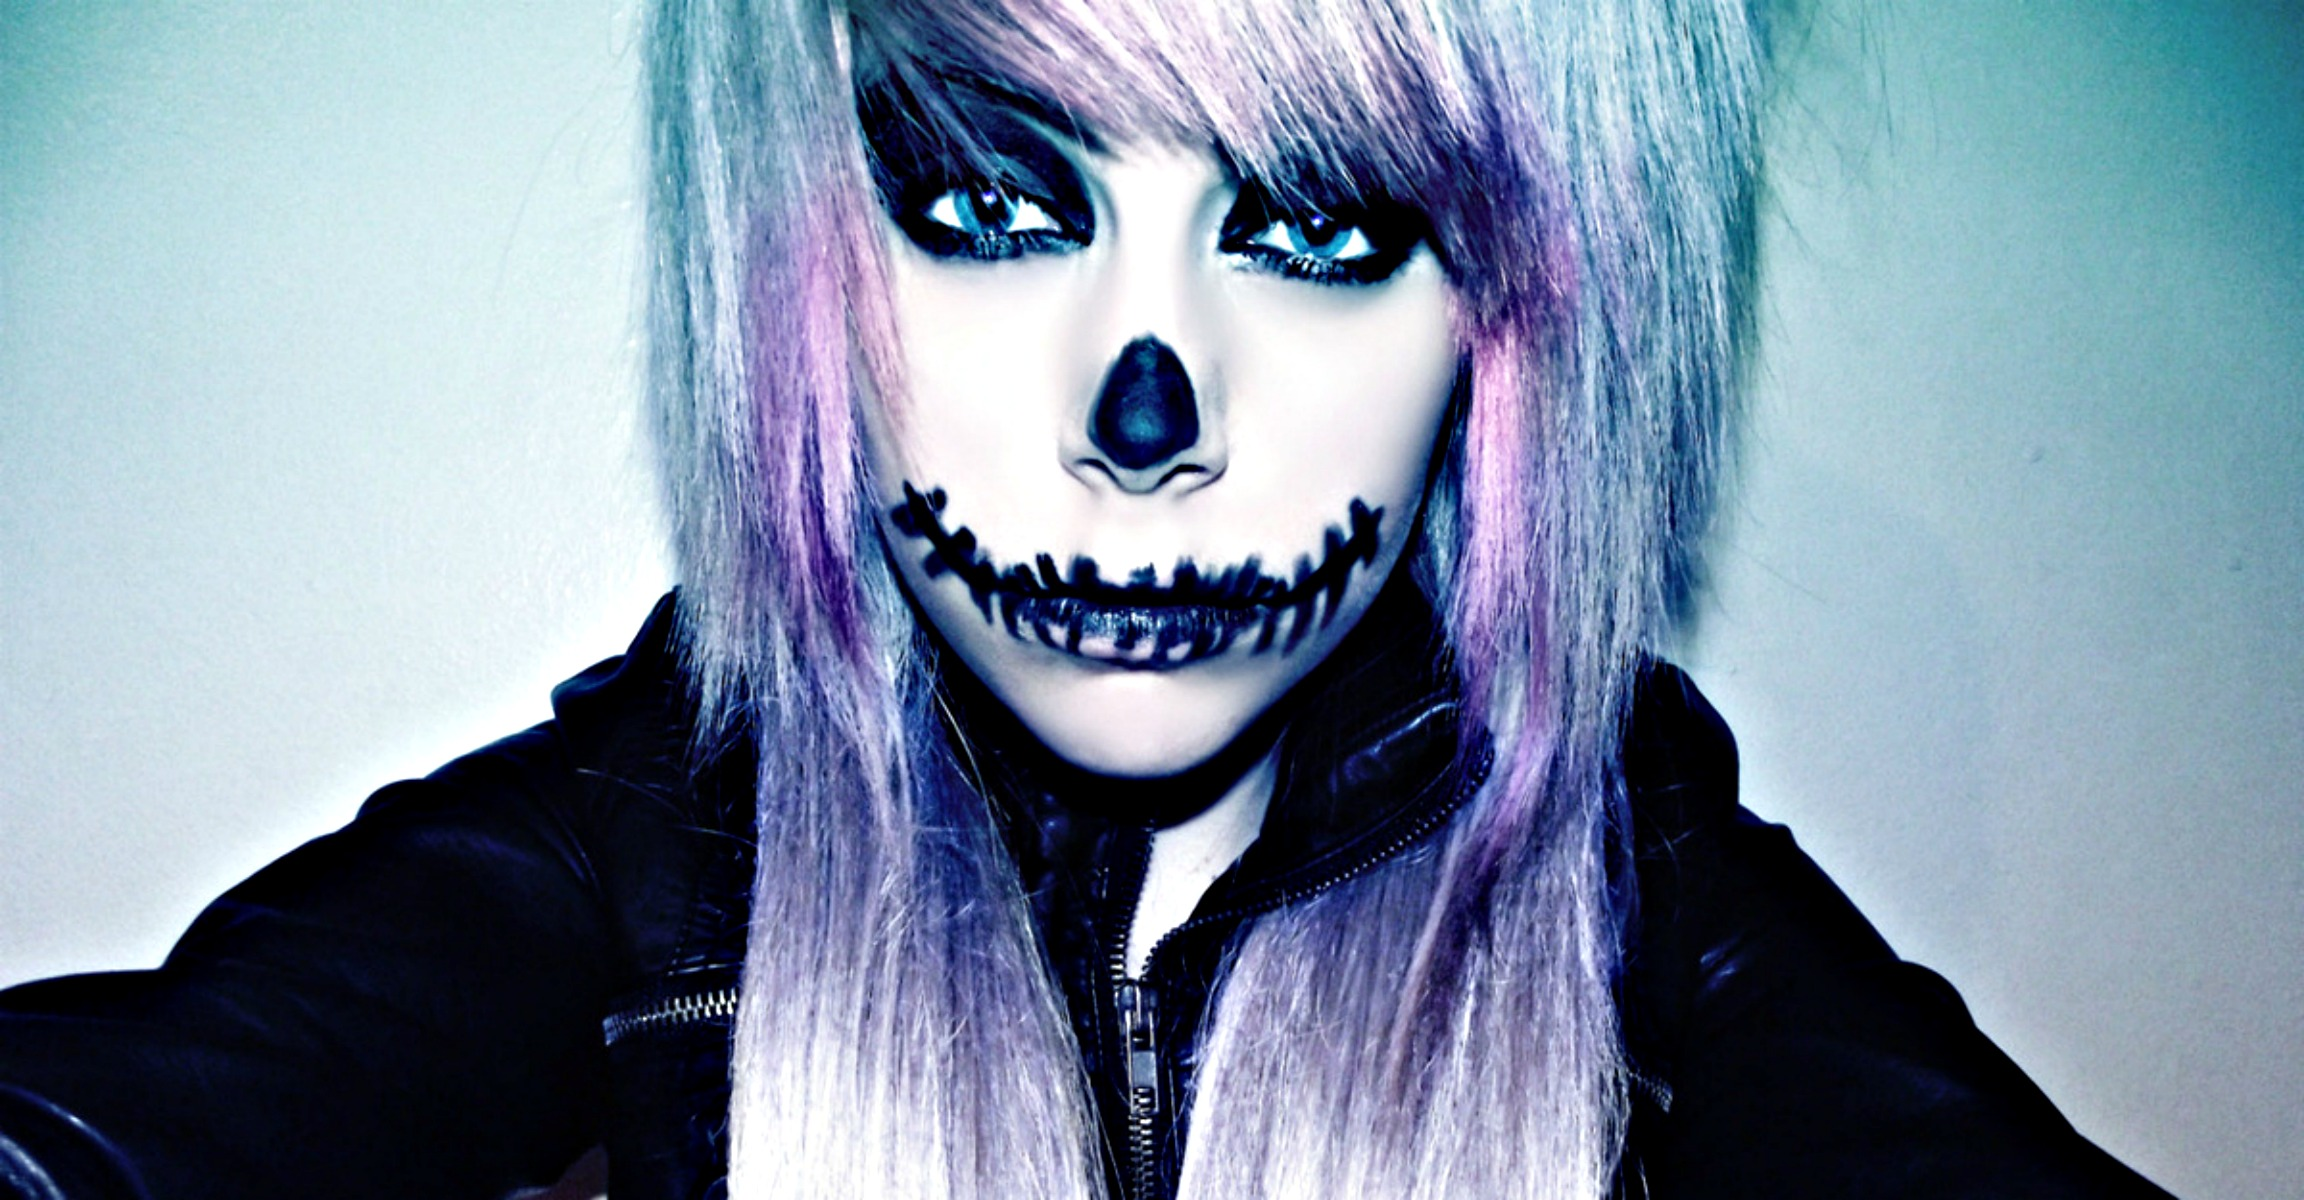 Emo wallpapers high quality download free - Emo scene wallpaper ...